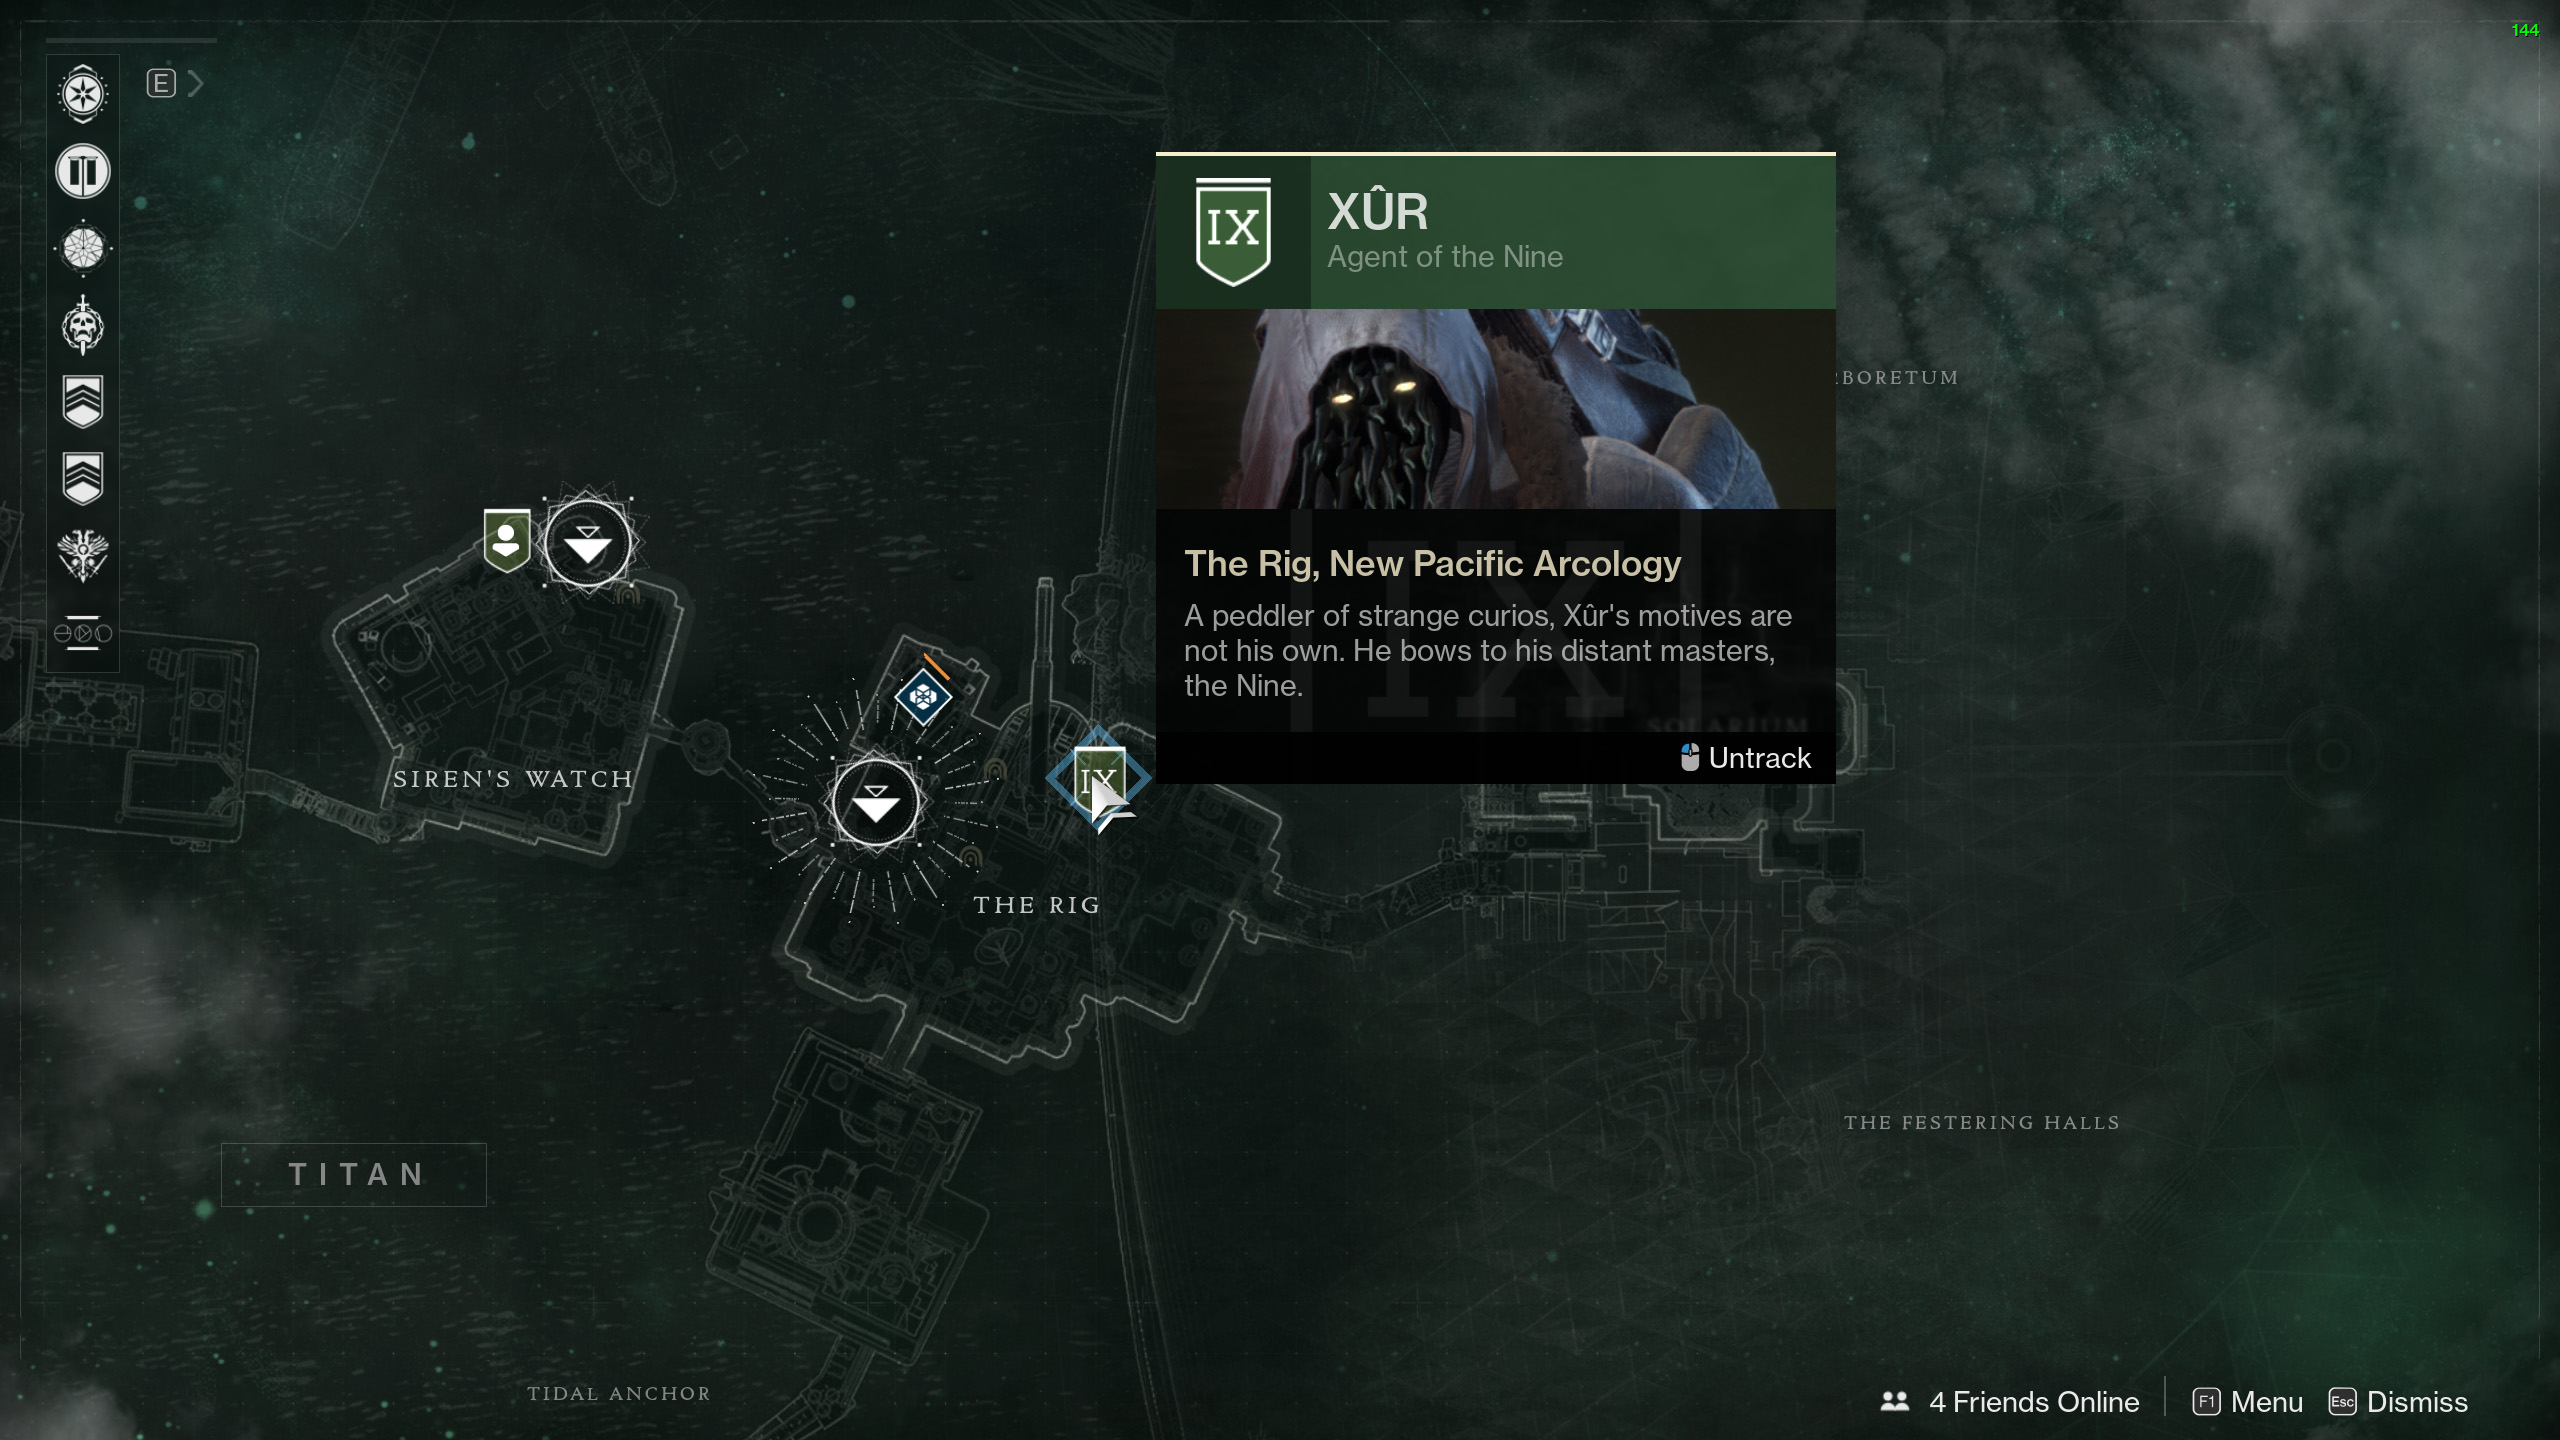 Destiny 2 - Where is Xur and What is He Selling - January 26